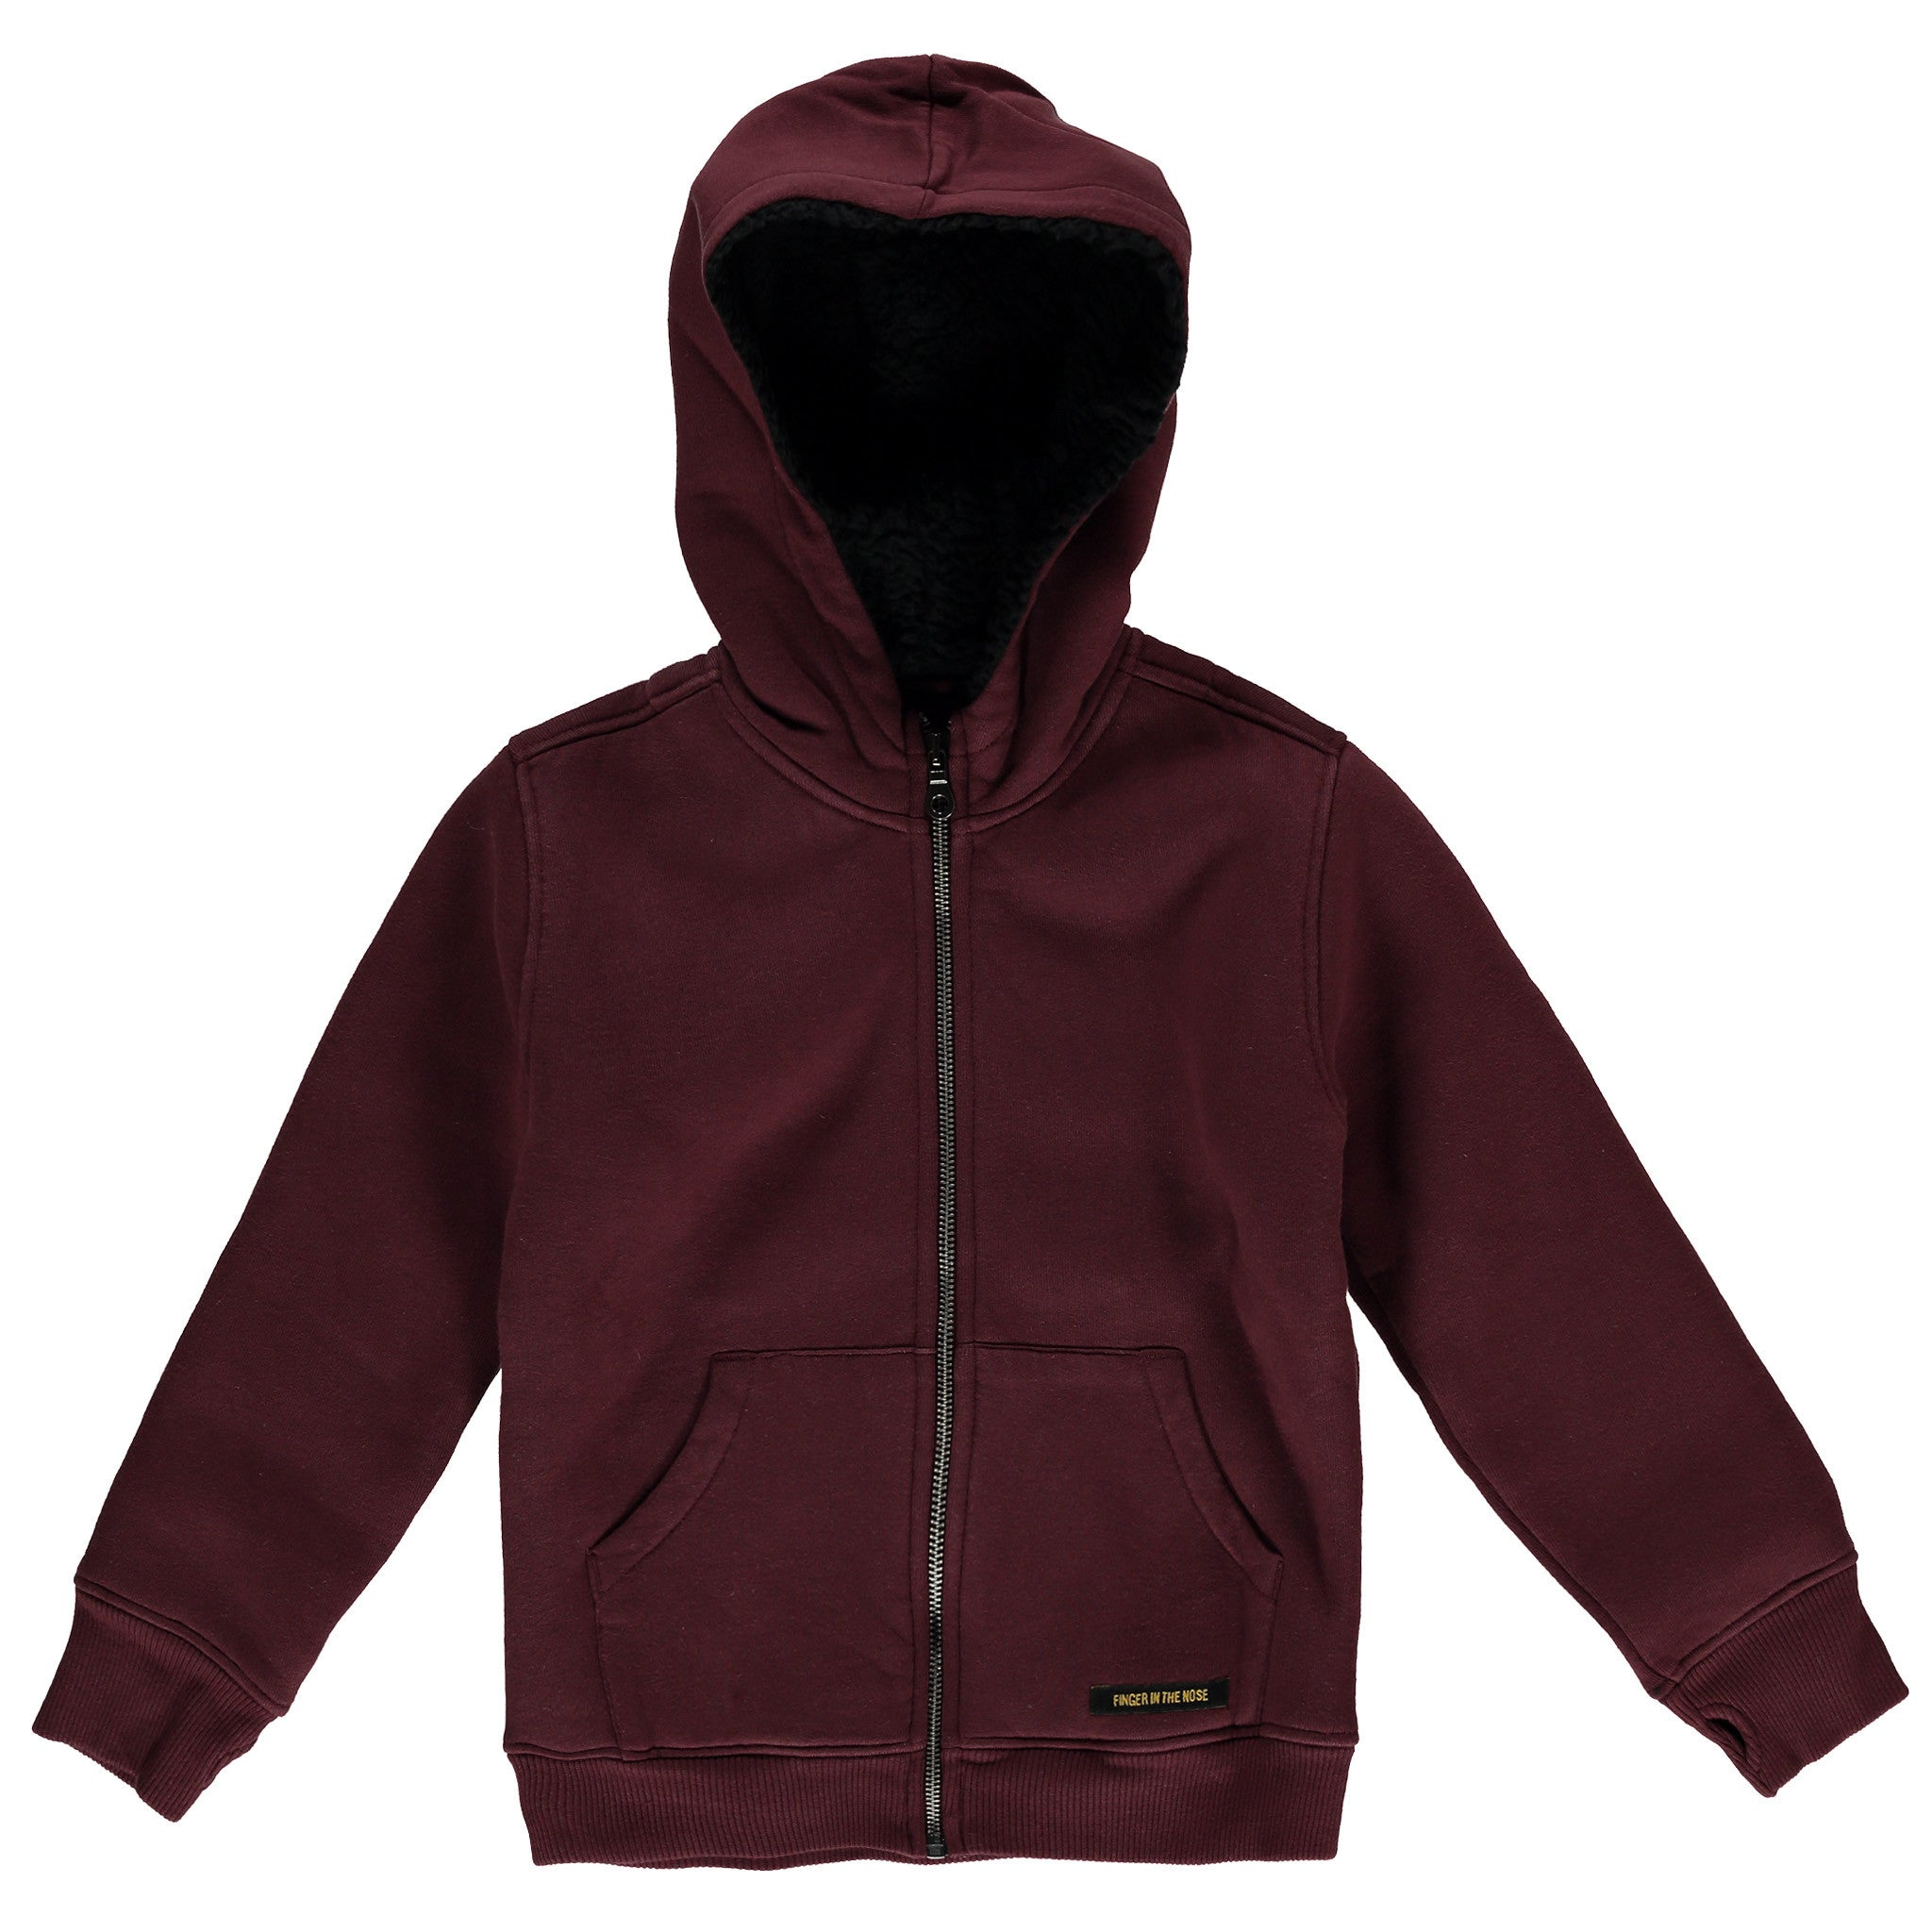 Finger in the Nose Hooper Zipped Hoodie in Burgundy | BIEN BIEN